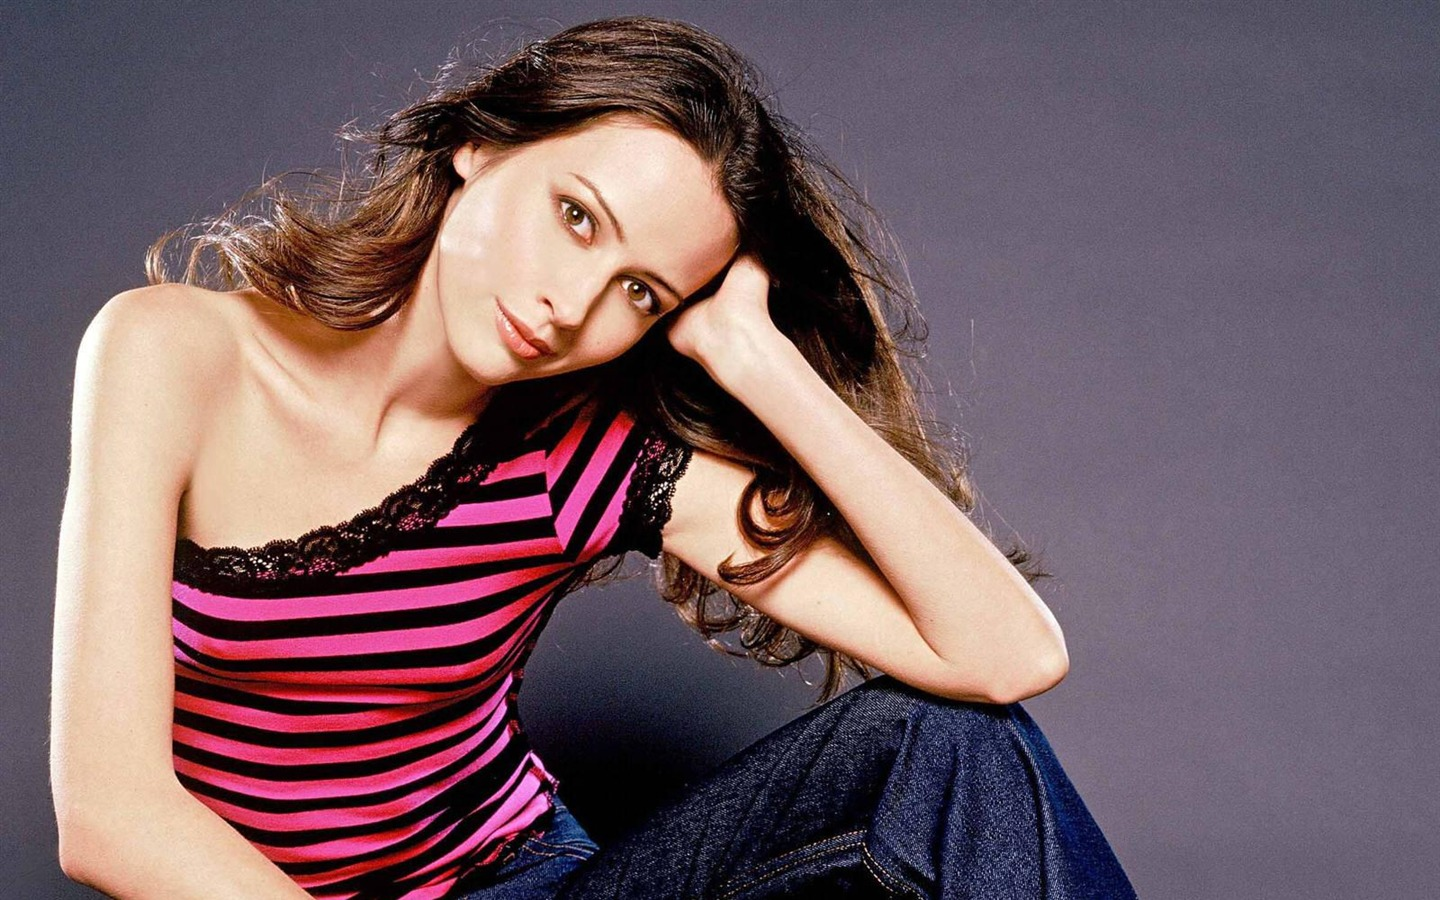 Amy Acker #011 - 1440x900 Wallpapers Pictures Photos Images